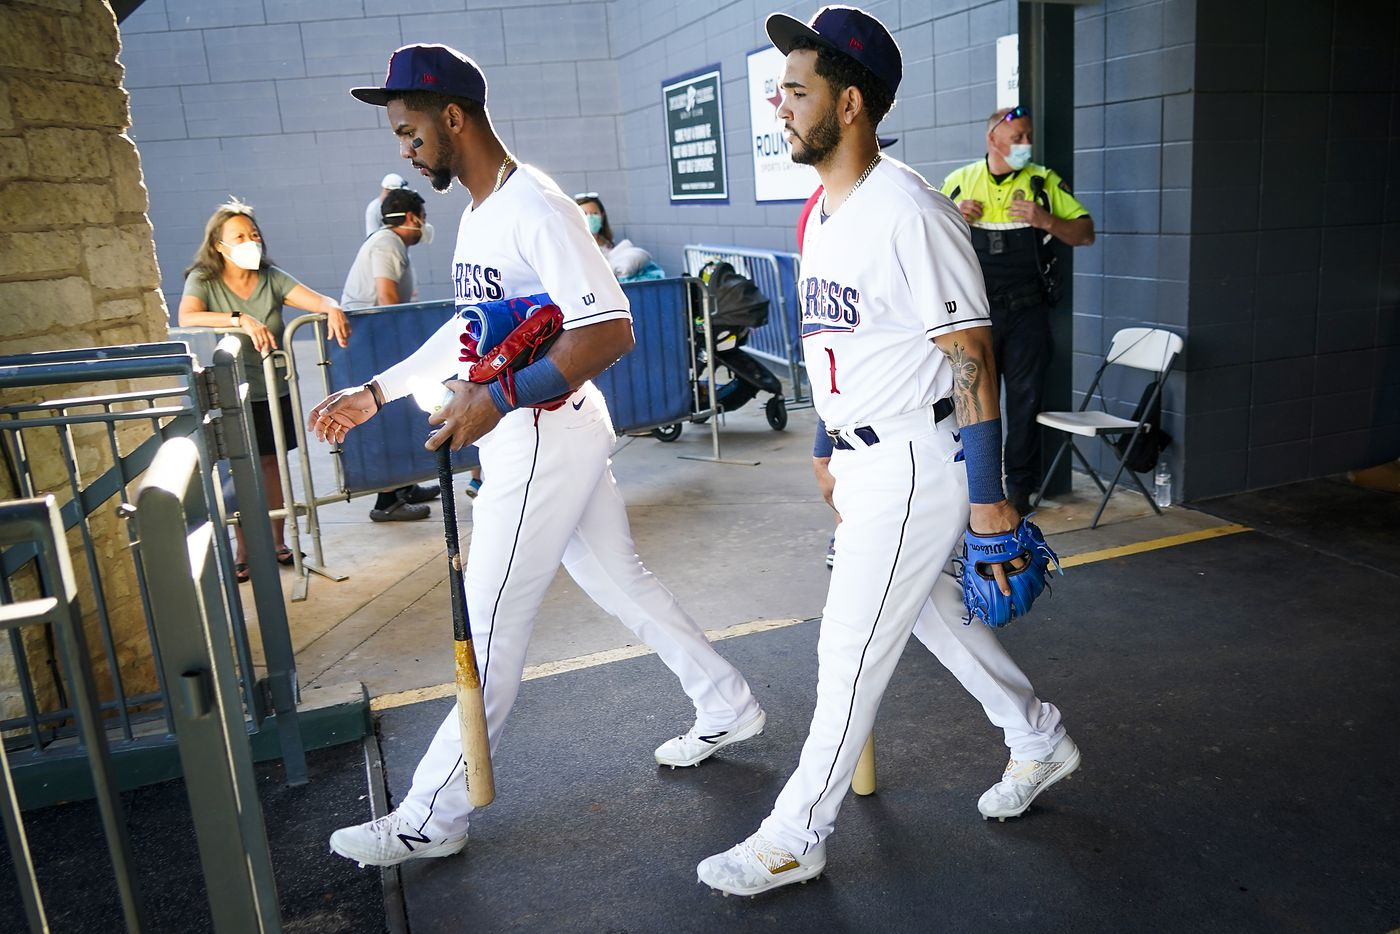 Round Rock Express outfielder Leody Taveras (left) and infielder Anderson Tejeda take the field to warm up at Dell Diamond for the season opener against the Oklahoma City Dodgers on Thursday, May 6, 2021, in Round Rock, Texas. It was the first gamer for the Express in 601 days due to the COVID-19 pandemic.